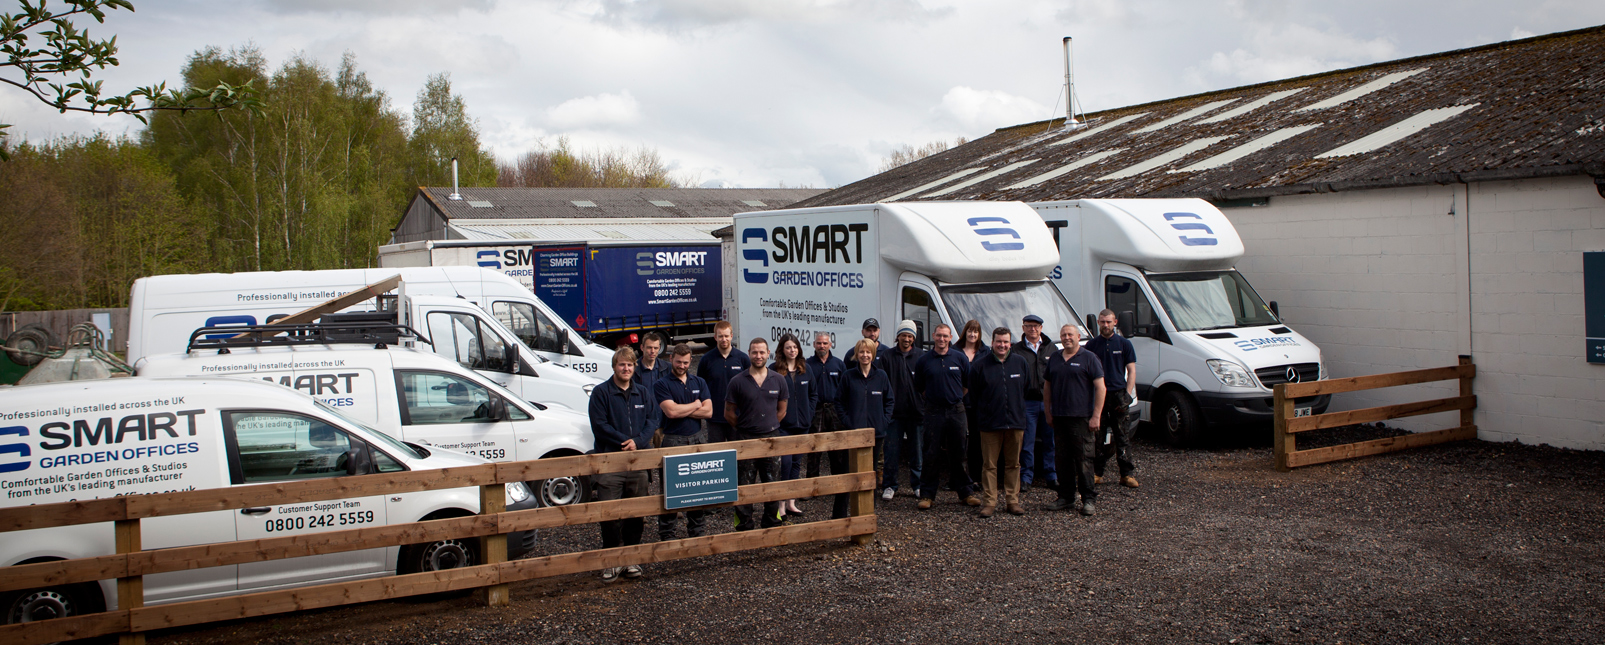 Smart Garden Office Team